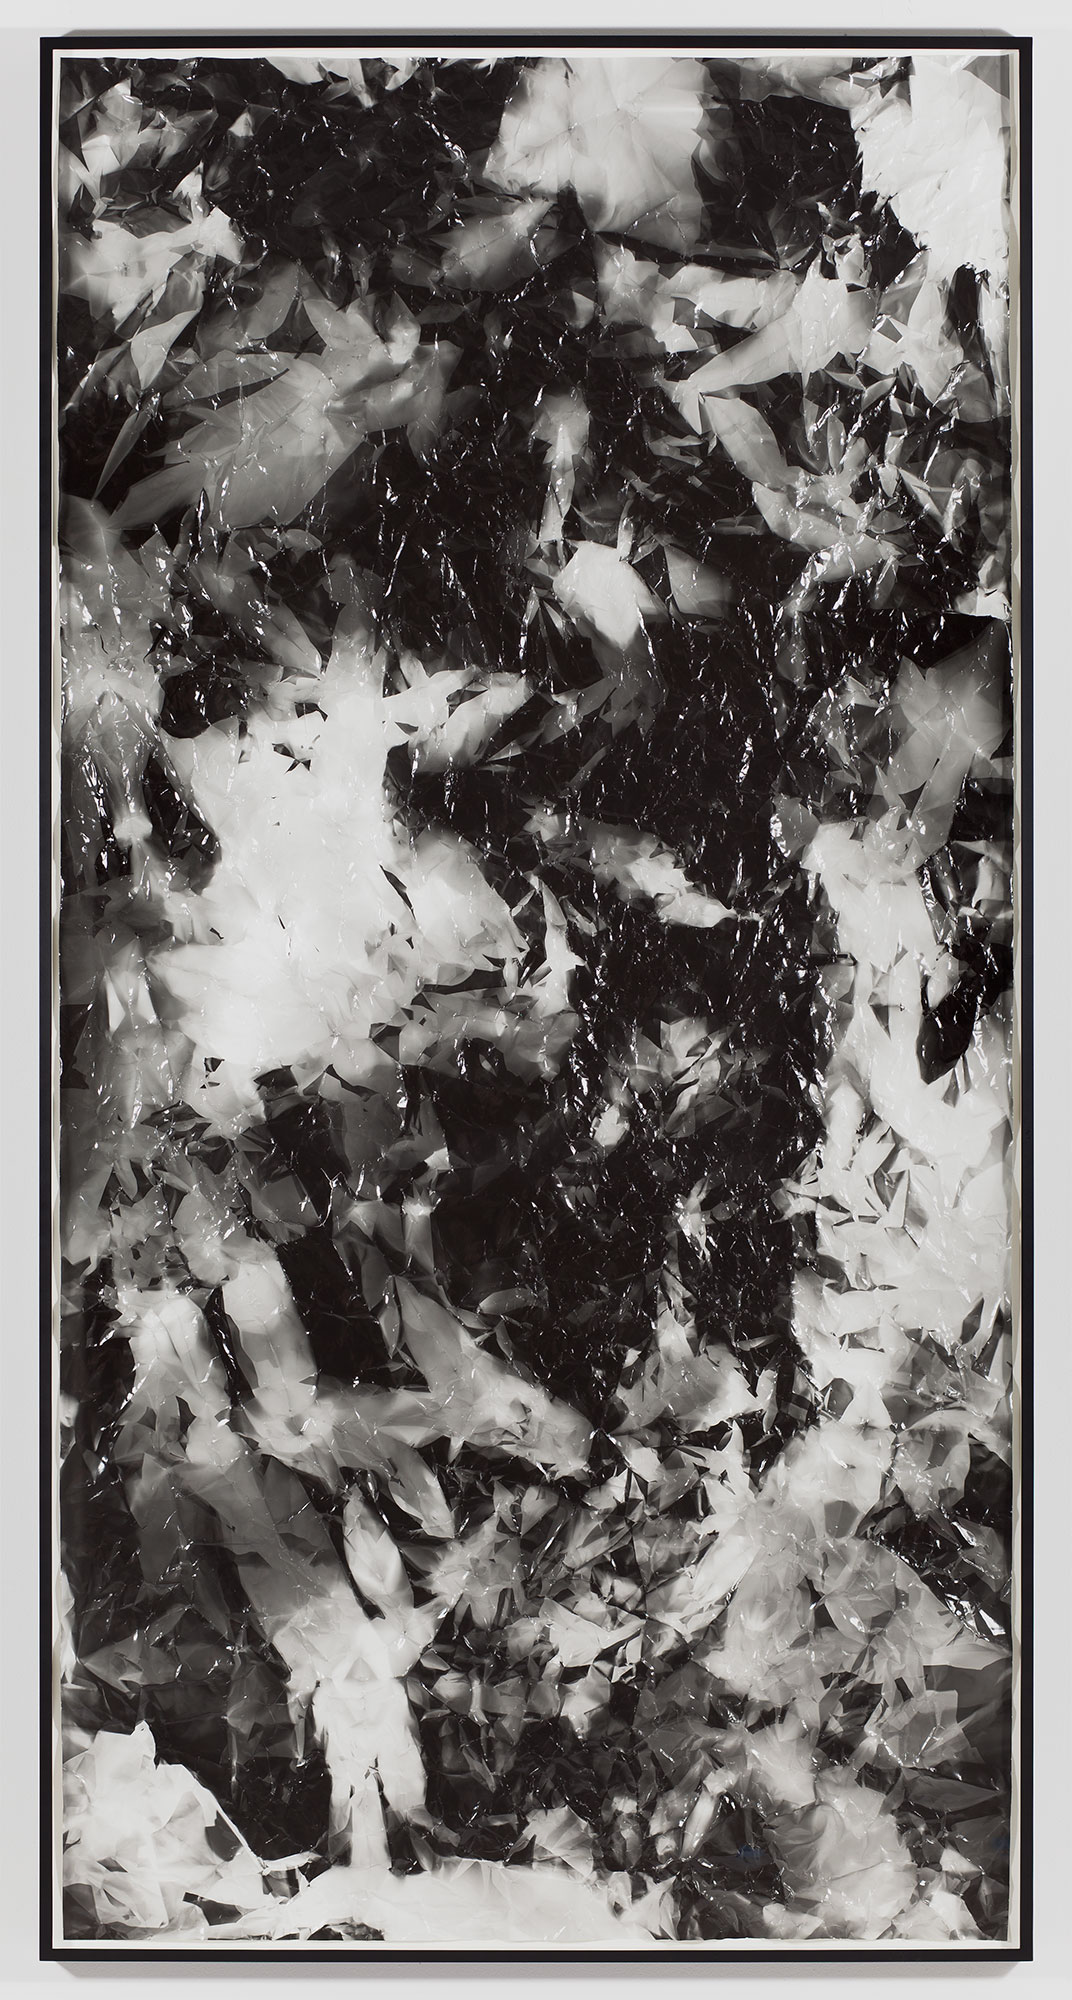 Picture Made by My Hand with the Assistance of Light    2011   Black and white fiber based photographic paper  55 inches